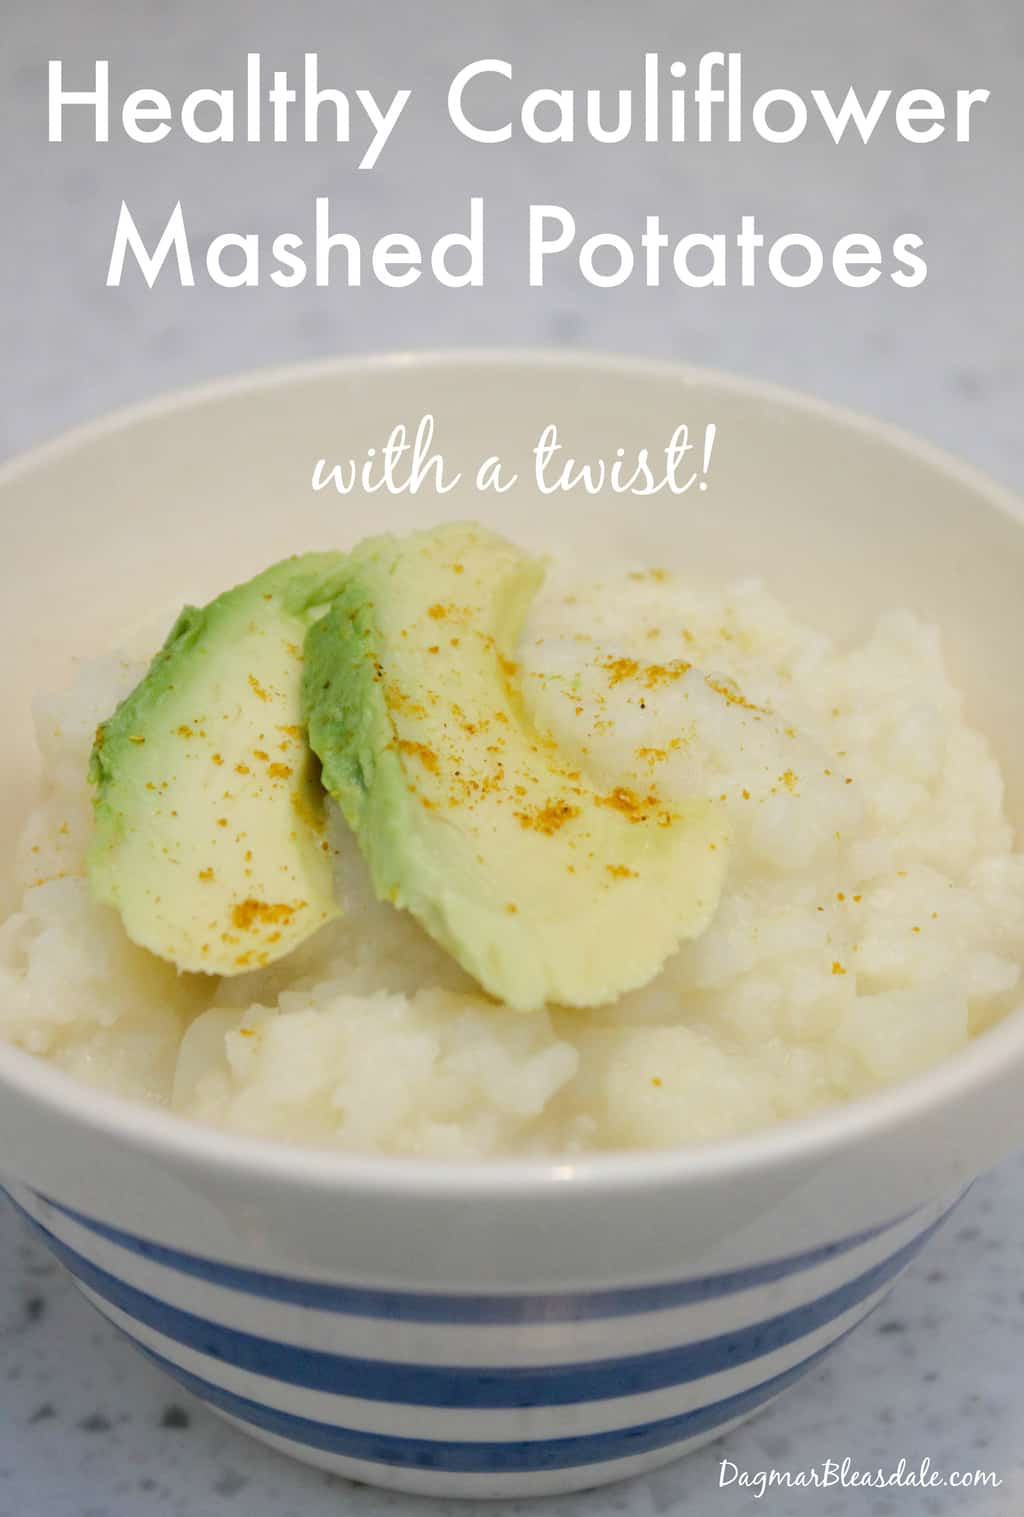 Is Mashed Potatoes Healthy  Healthy Cauliflower Mashed Potatoes Recipe With a Twist